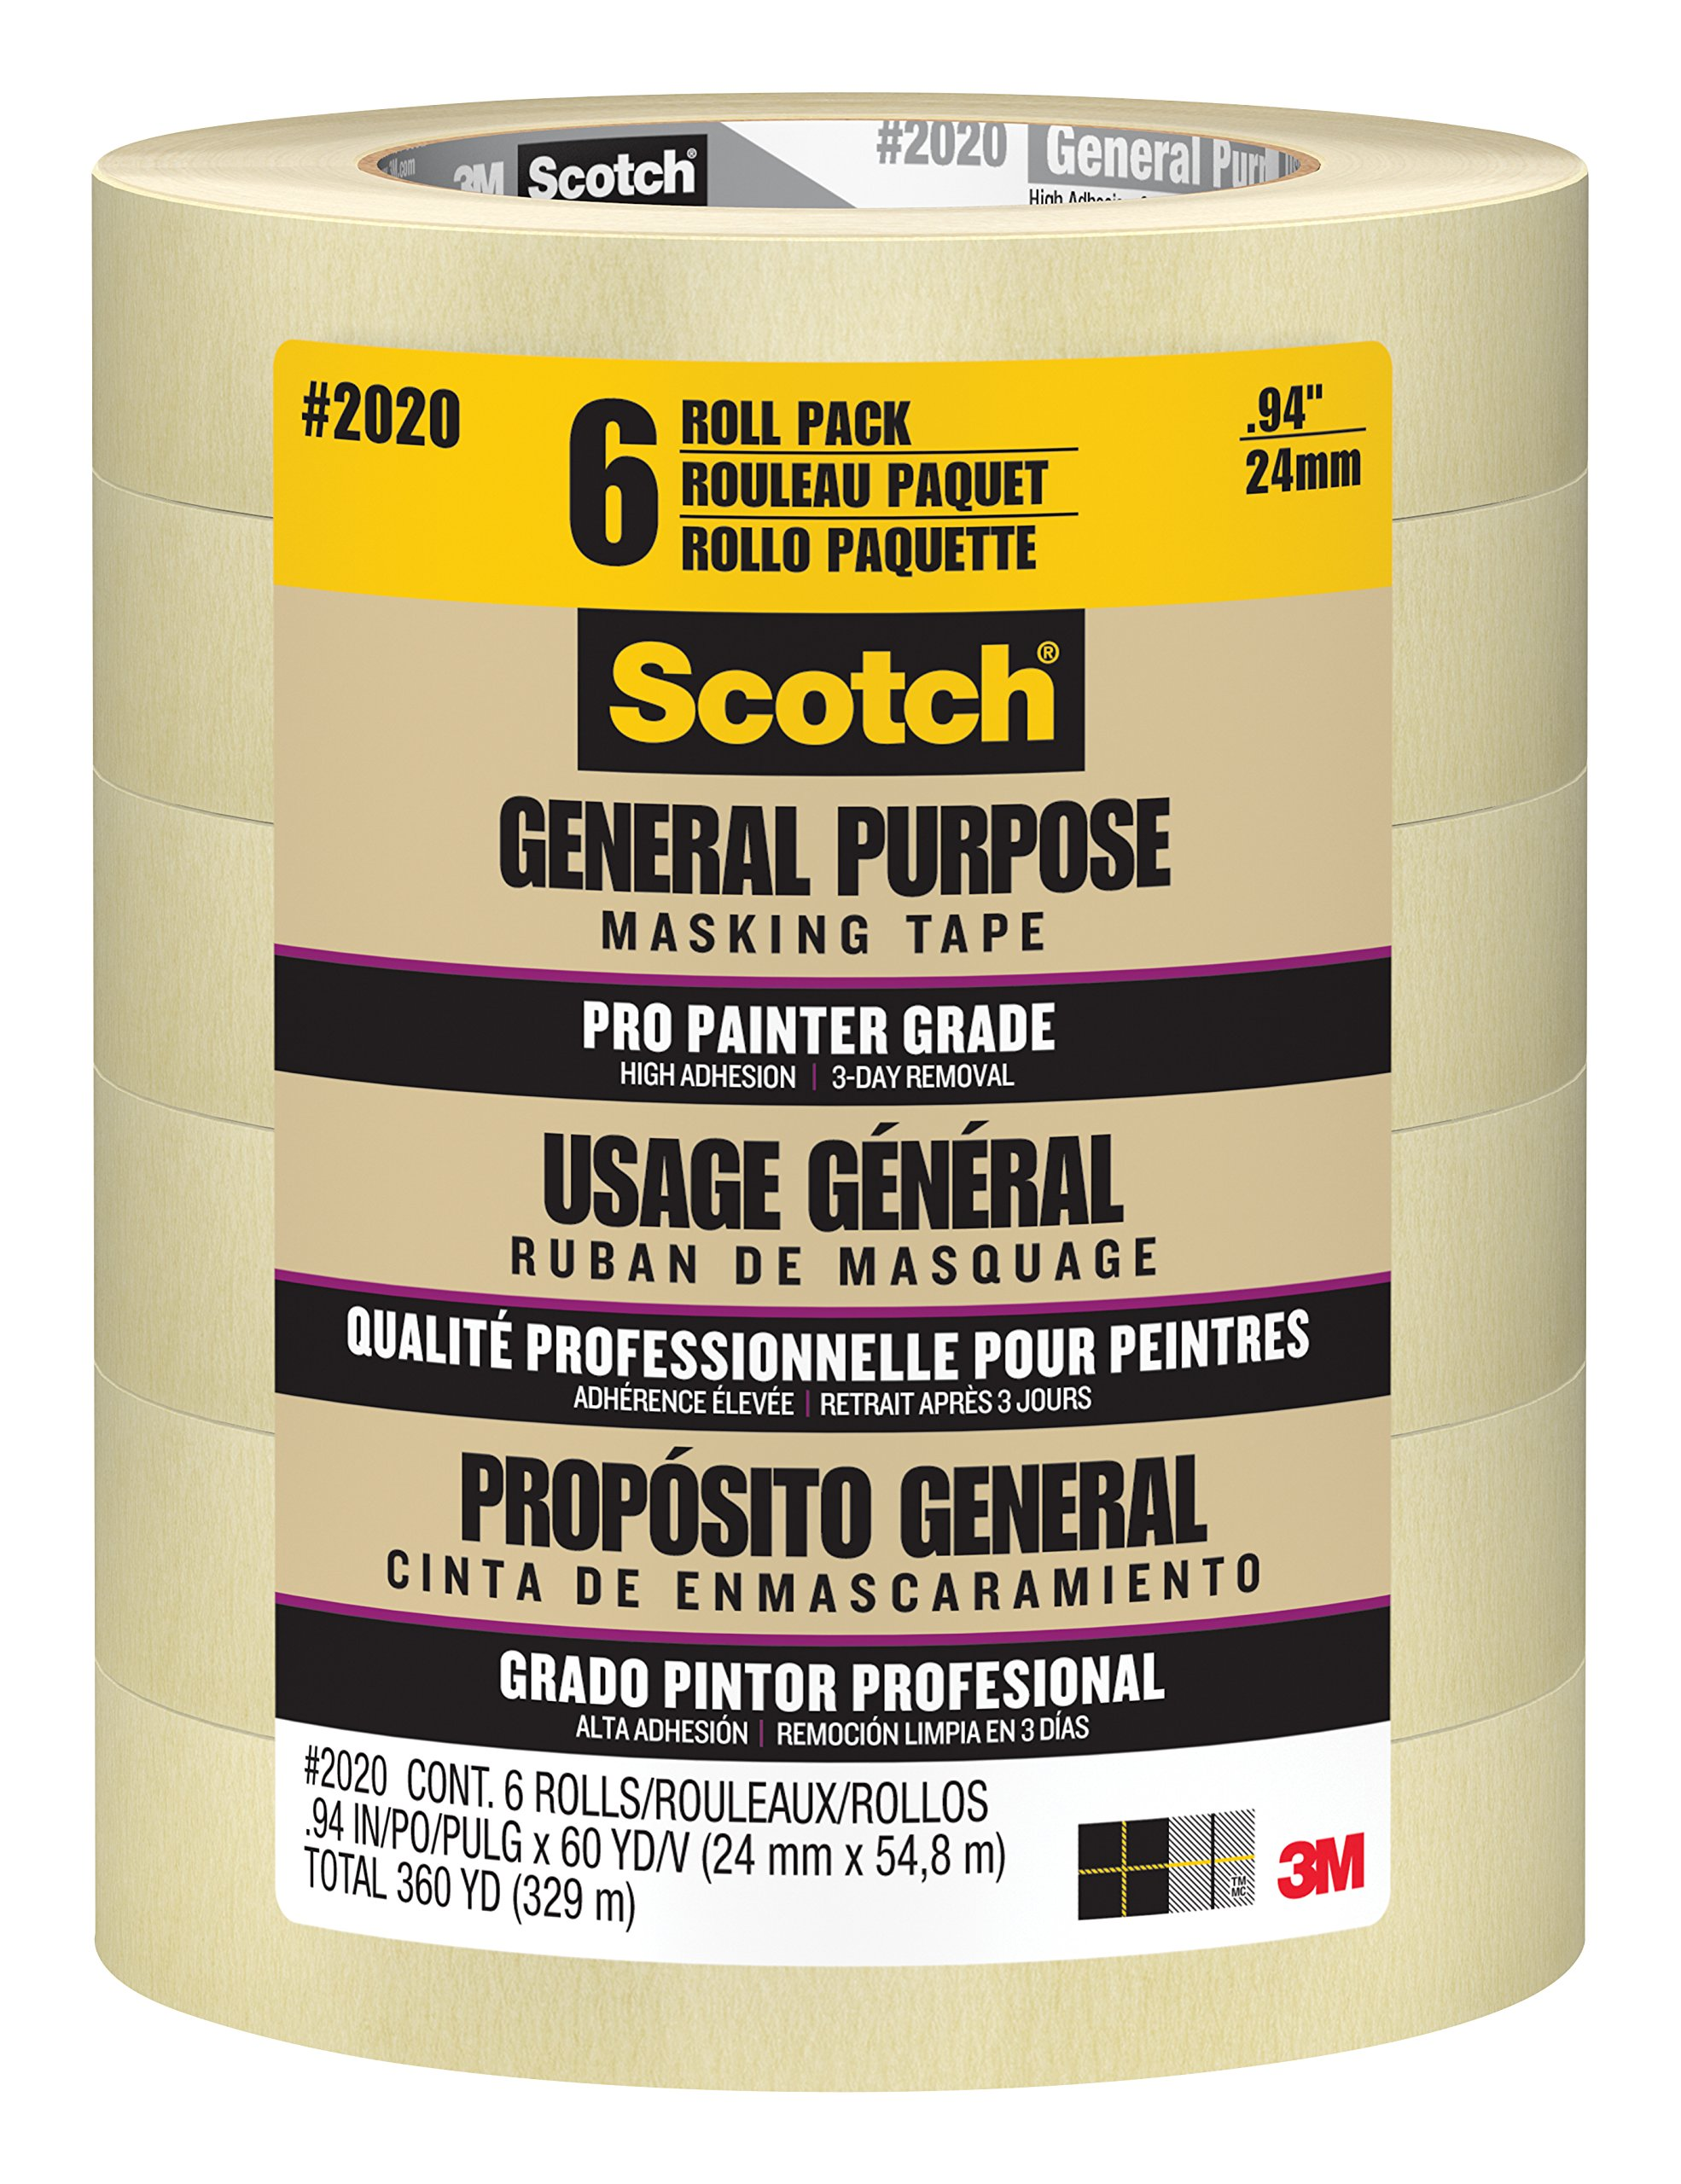 Scotch General Purpose Masking Tape, 2020-24E-CP, 0.94-Inch by 60.1-Yards, 6 Rolls